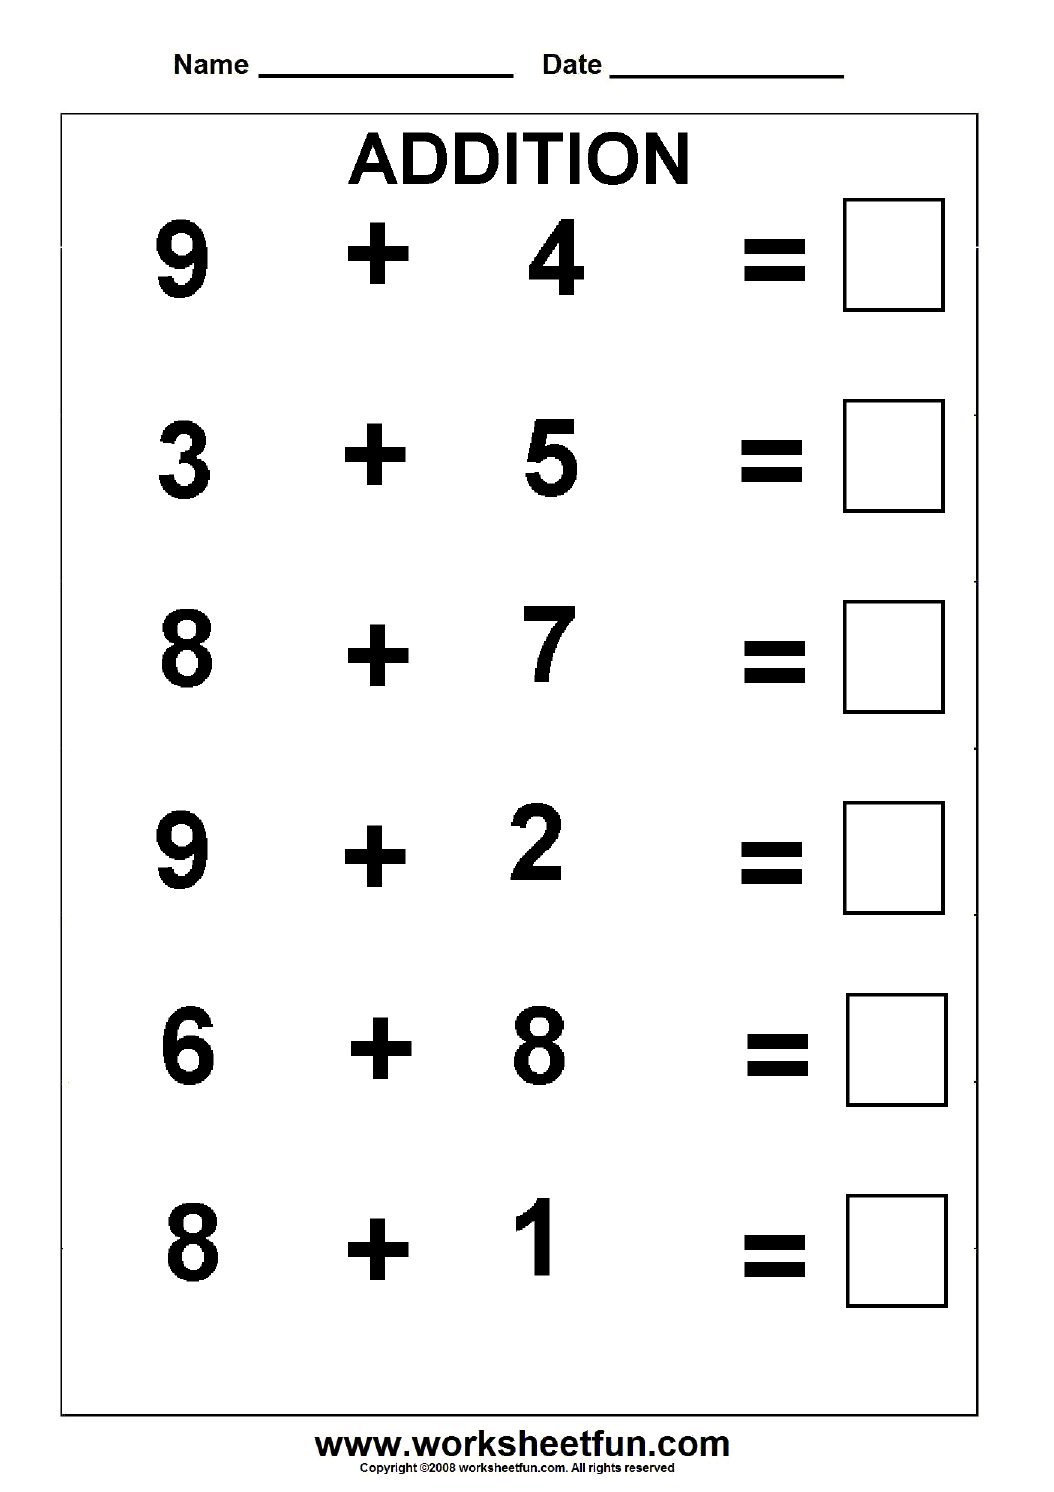 Beginner Addition 5 Kindergarten Addition Worksheets